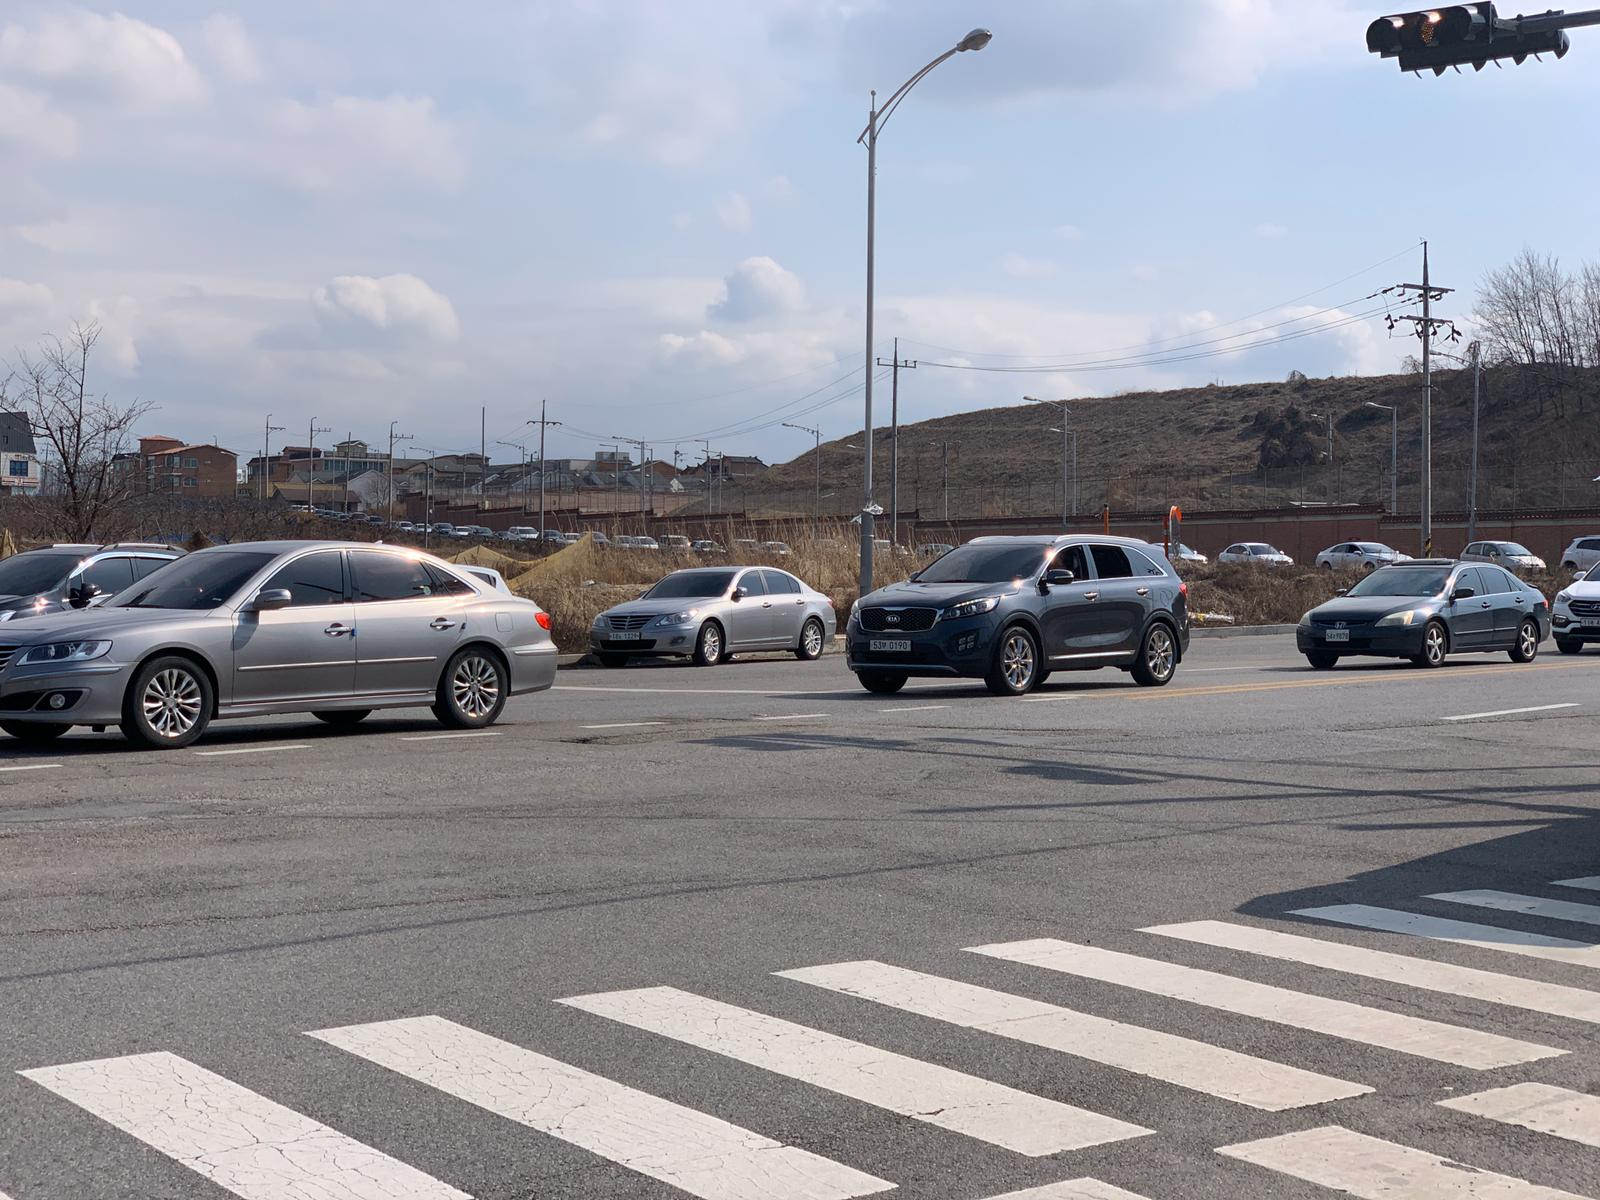 A long line of cars waiting hours to enter the military base Camp Humphreys in South Korea.